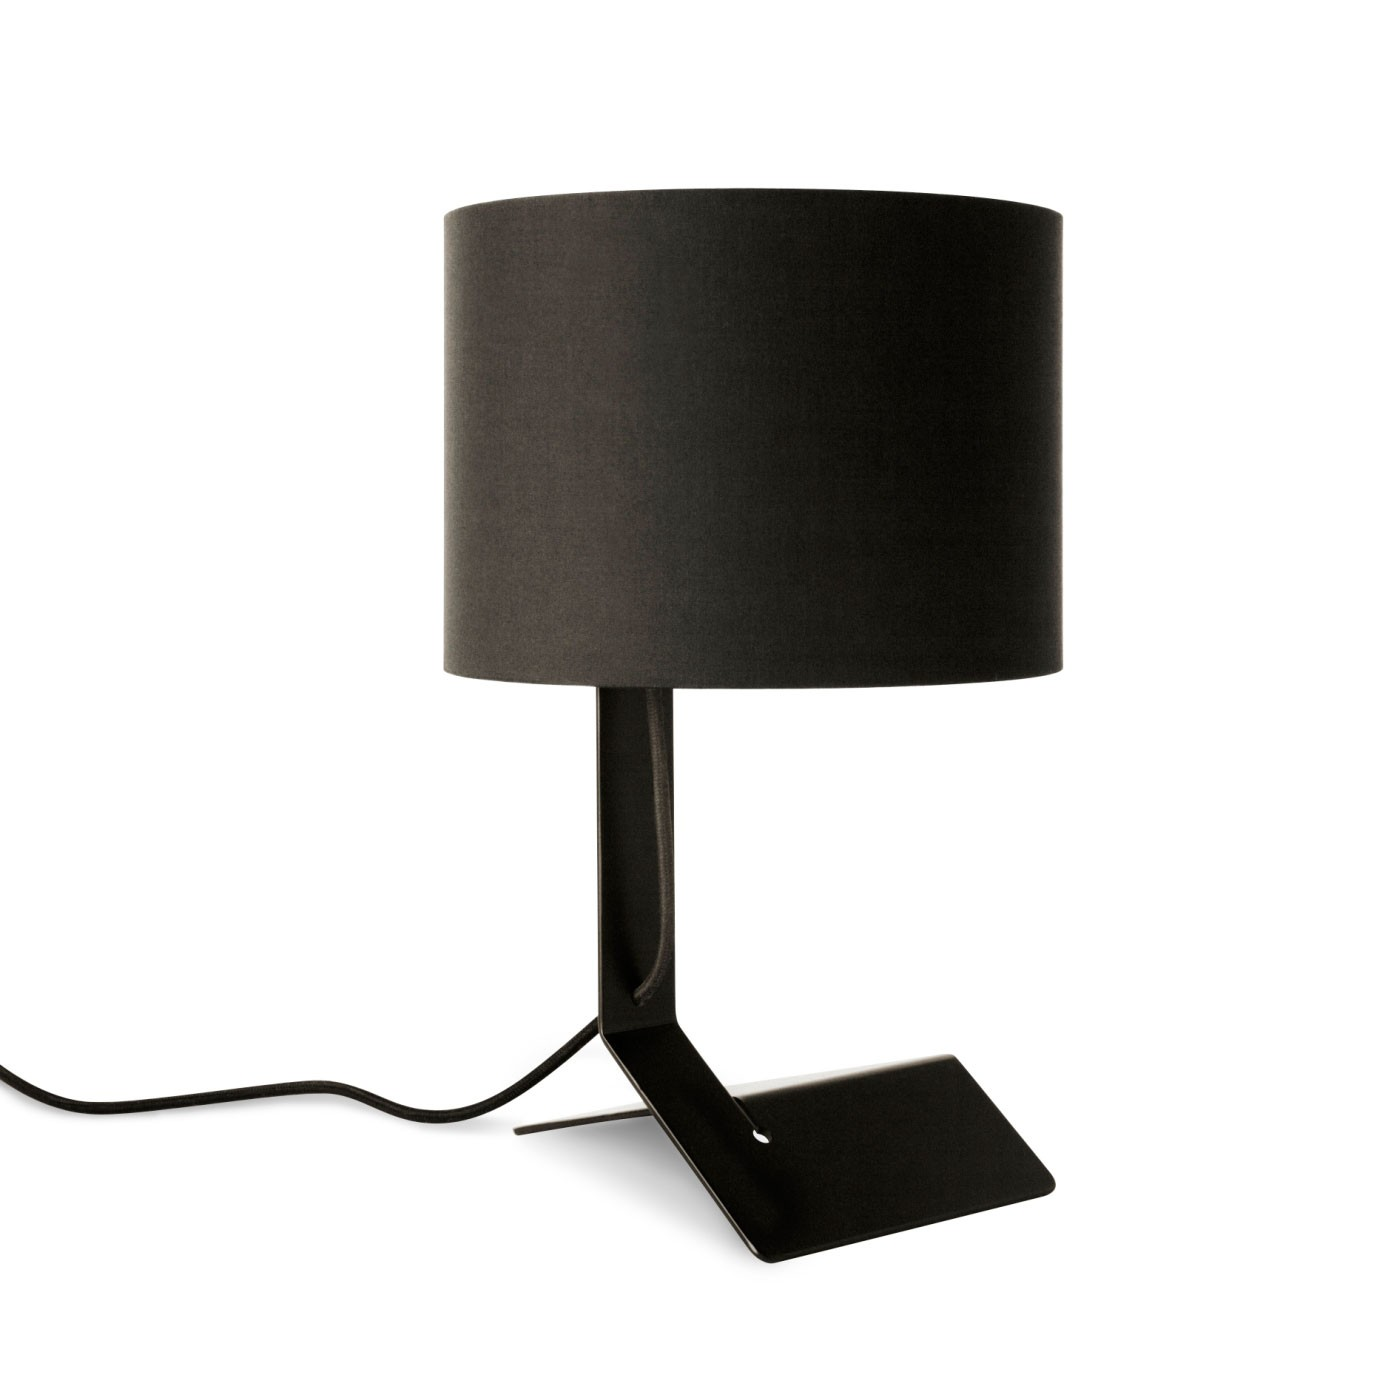 Stylish Bedside Lamps Top 10 Modern Bedside Table Lamps 2019 Warisan Lighting